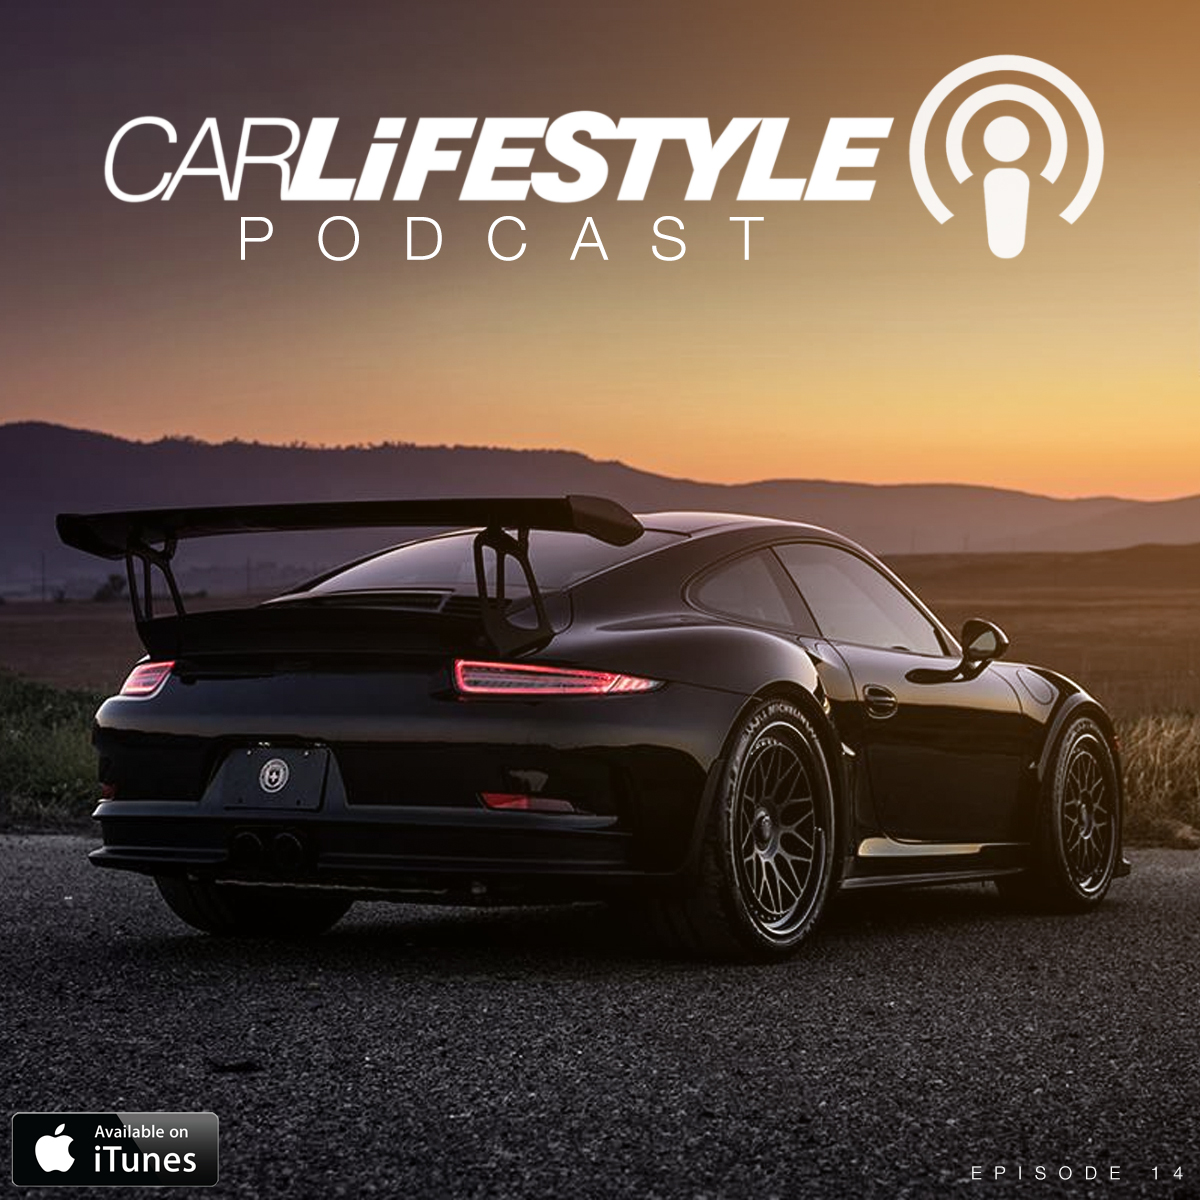 Join the CarLifestyle crew as we welcome our special guest and partners of CarLifestyle, Elizabeth White & Andrew Zalasin from #itswhitenoise.  Find out their history and the story behind their movement and passion for cars, specifically Porsche.  Link to the CarLifestyle Podcast: https://goo.gl/xmL7sj